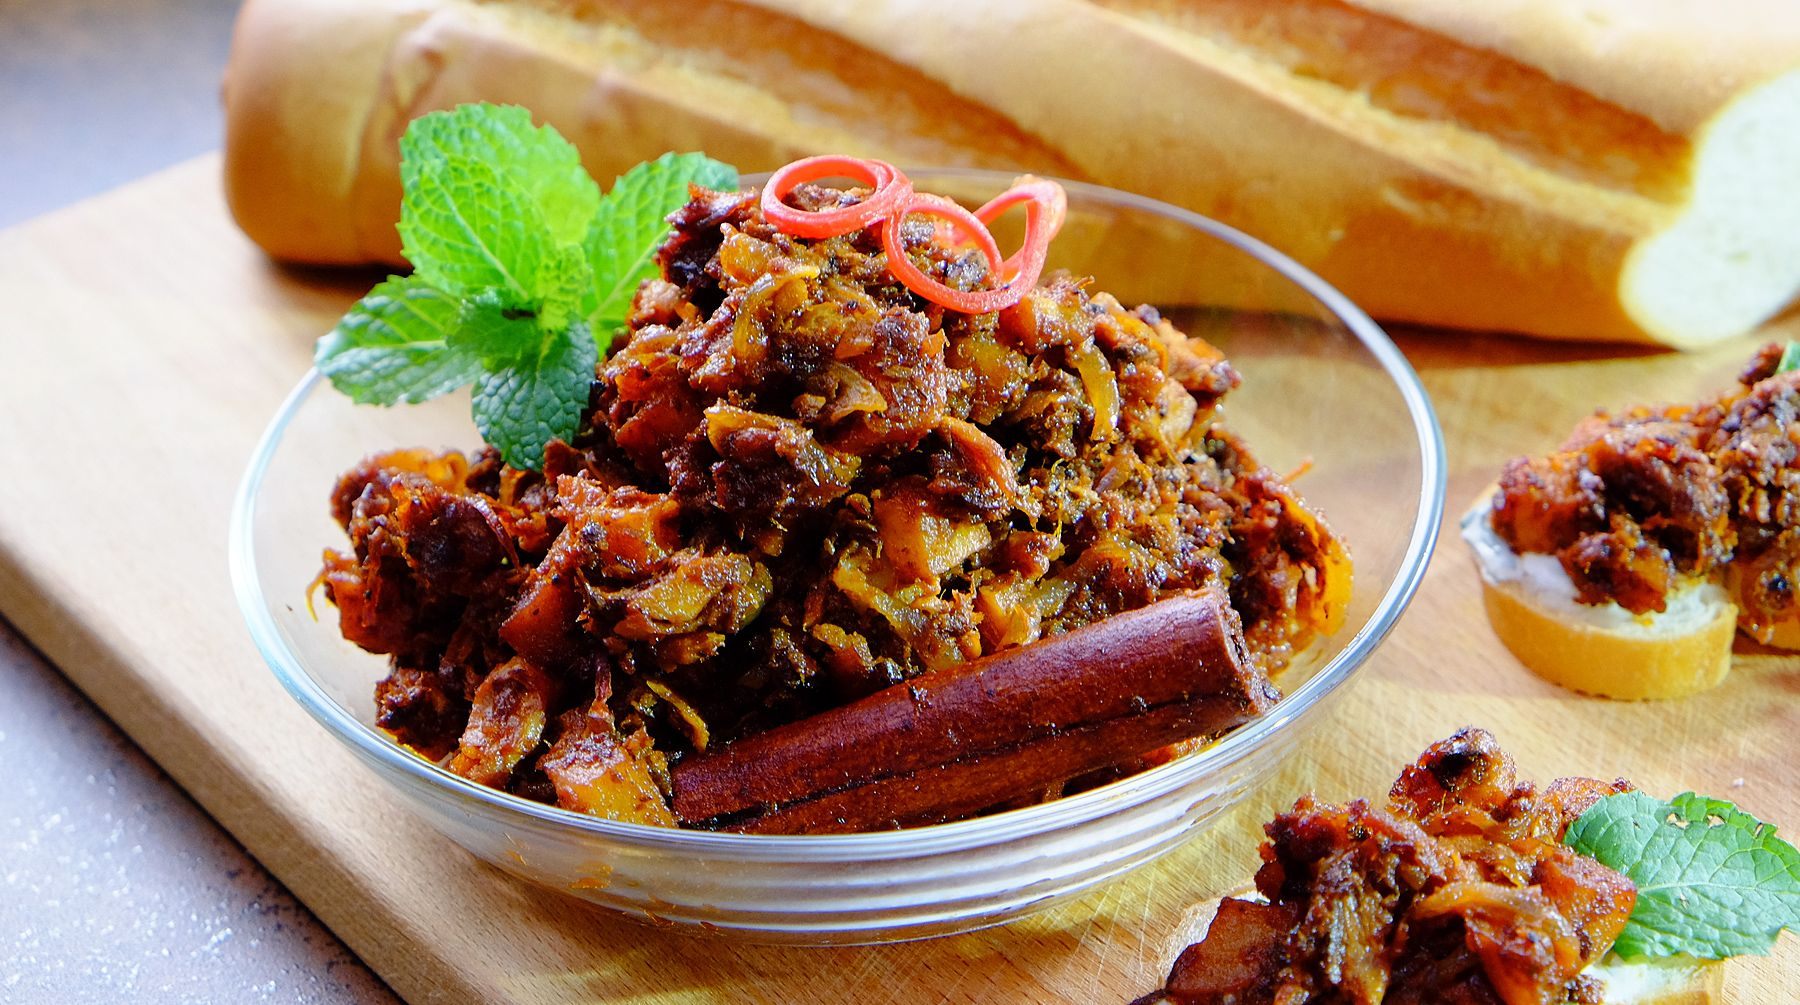 Get this sardine recipe by sherson lian from family